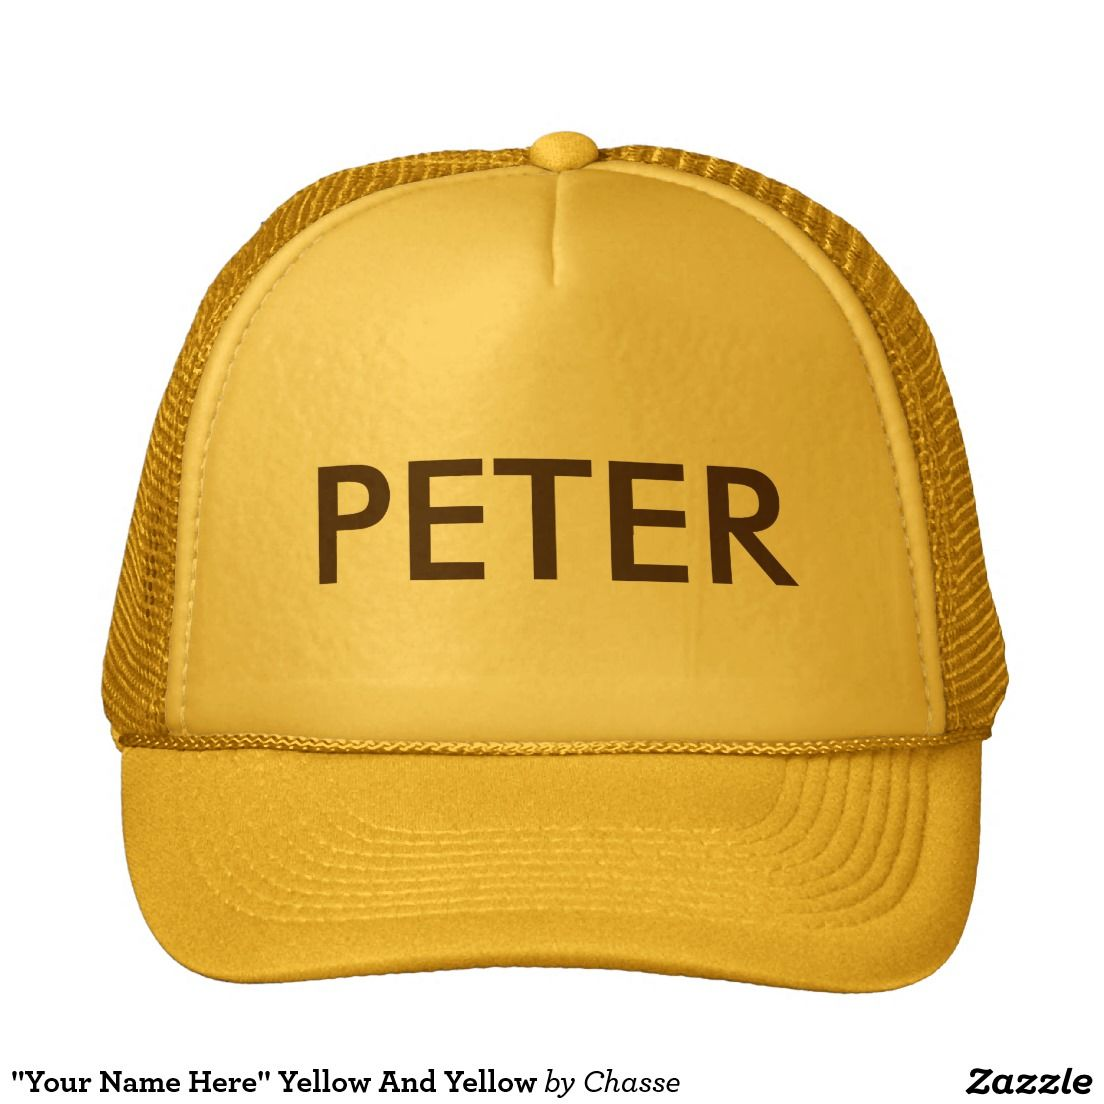 """Your Name Here"" Yellow And Yellow Trucker Hat. Ready for customization.  Choose your style and feel free to add your name,  text or to delete the text layer."